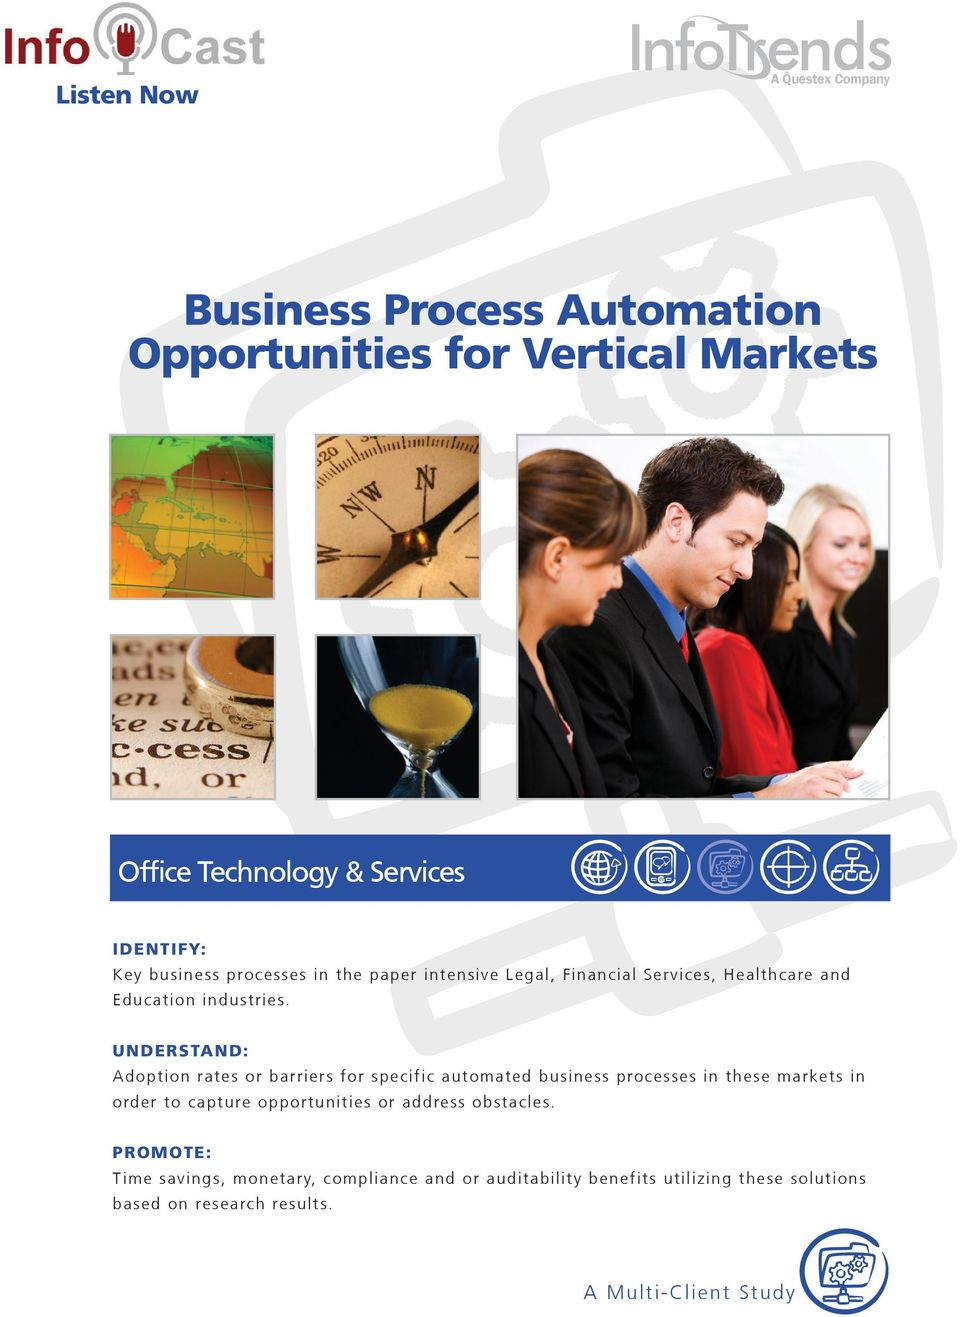 UNDERSTAND: Adoption rates or barriers for specific automated business processes in these markets in order to capture opportunities or